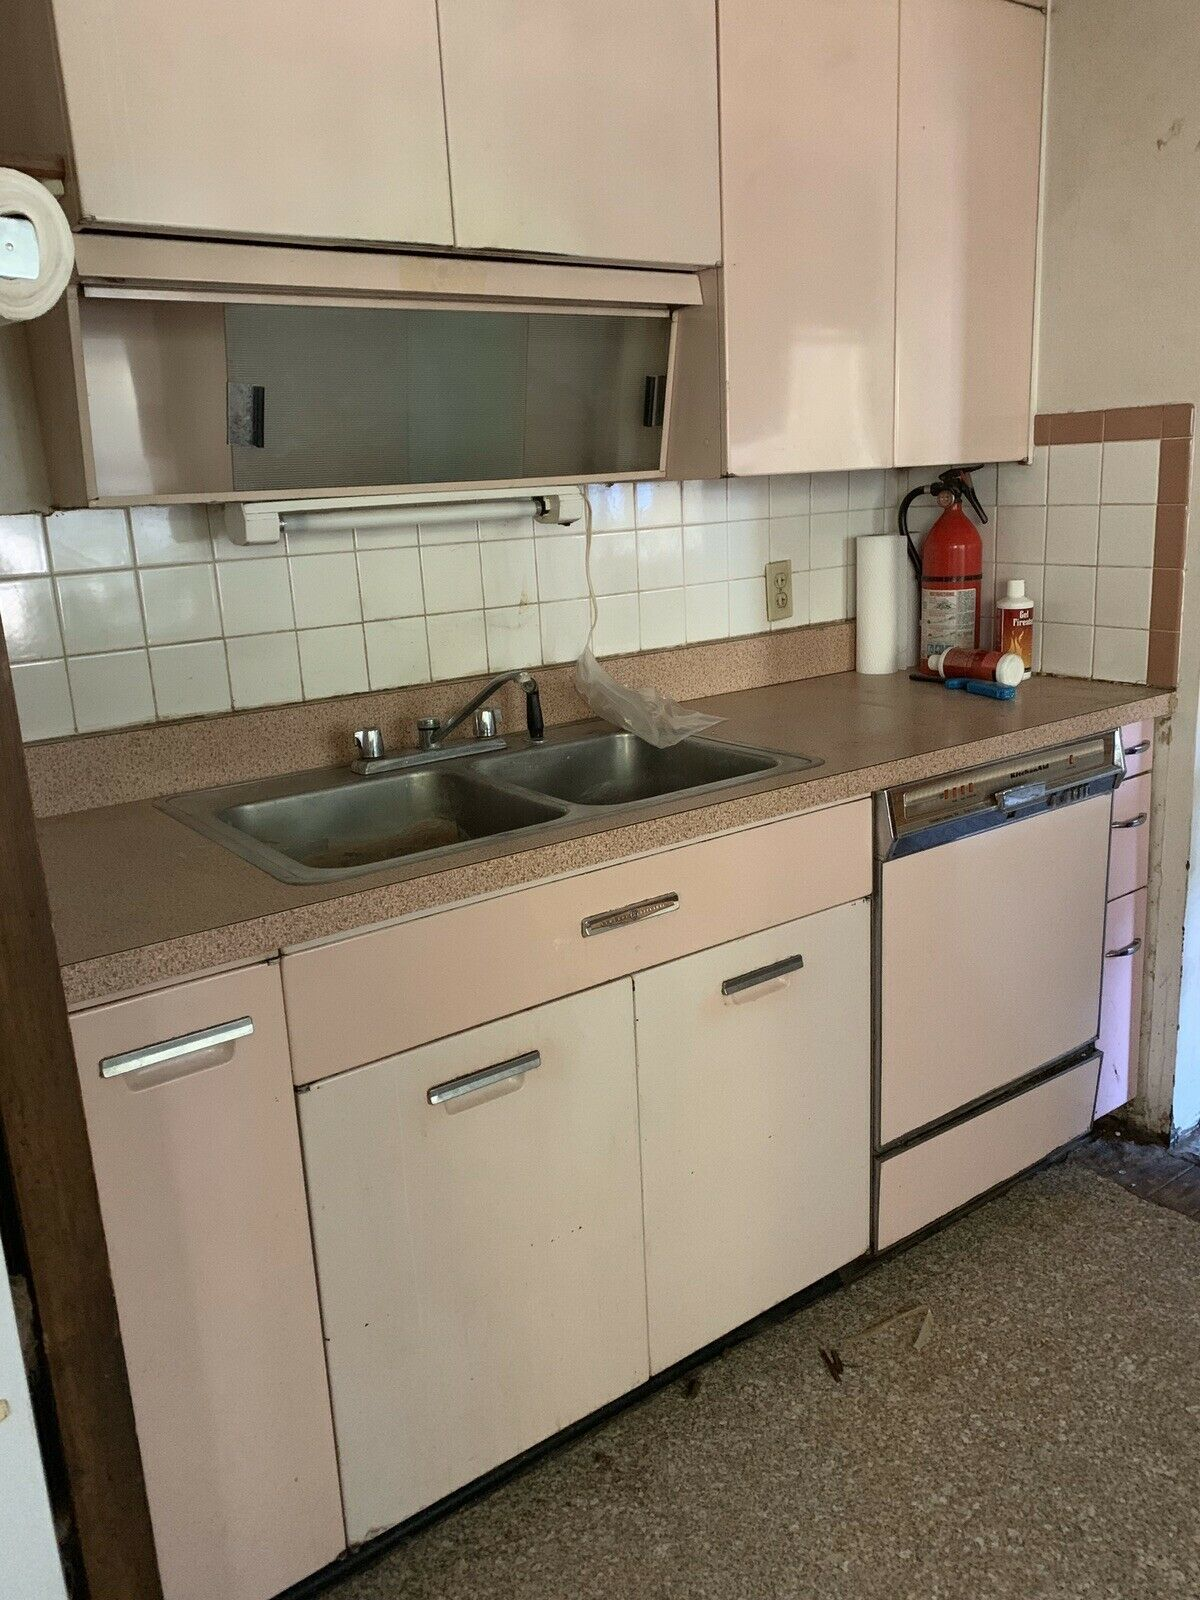 G E Vintage Metal Kitchen Cabinets Pink Retro Kitchen Cabinets Ideas Of Kitchen Cabin Buy Kitchen Cabinets Online Metal Kitchen Cabinets Kitchen Cabinets